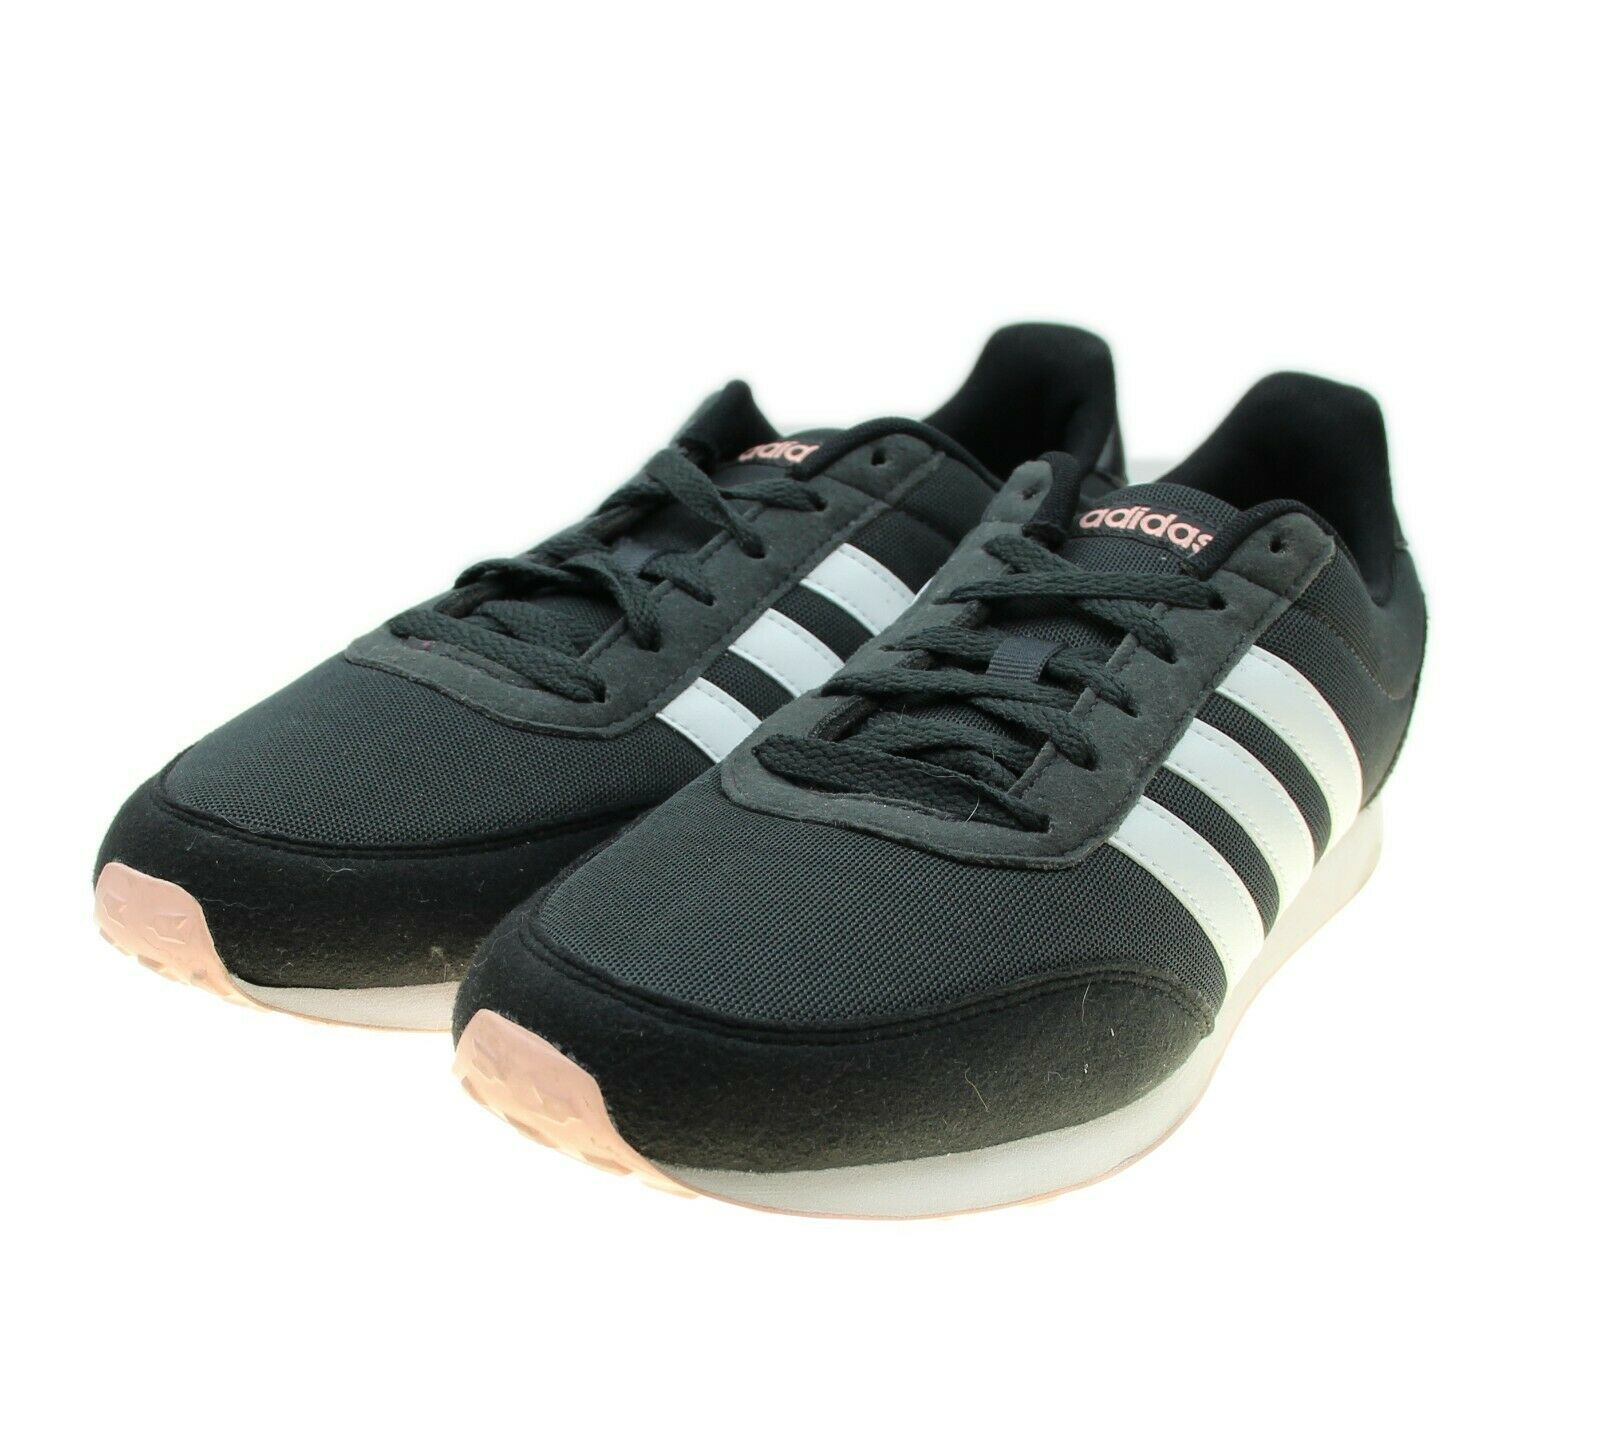 Adidas -V Racer 2.0-DB0432  Athletic Running Retro Textile Sneakers Shoes Sz 11